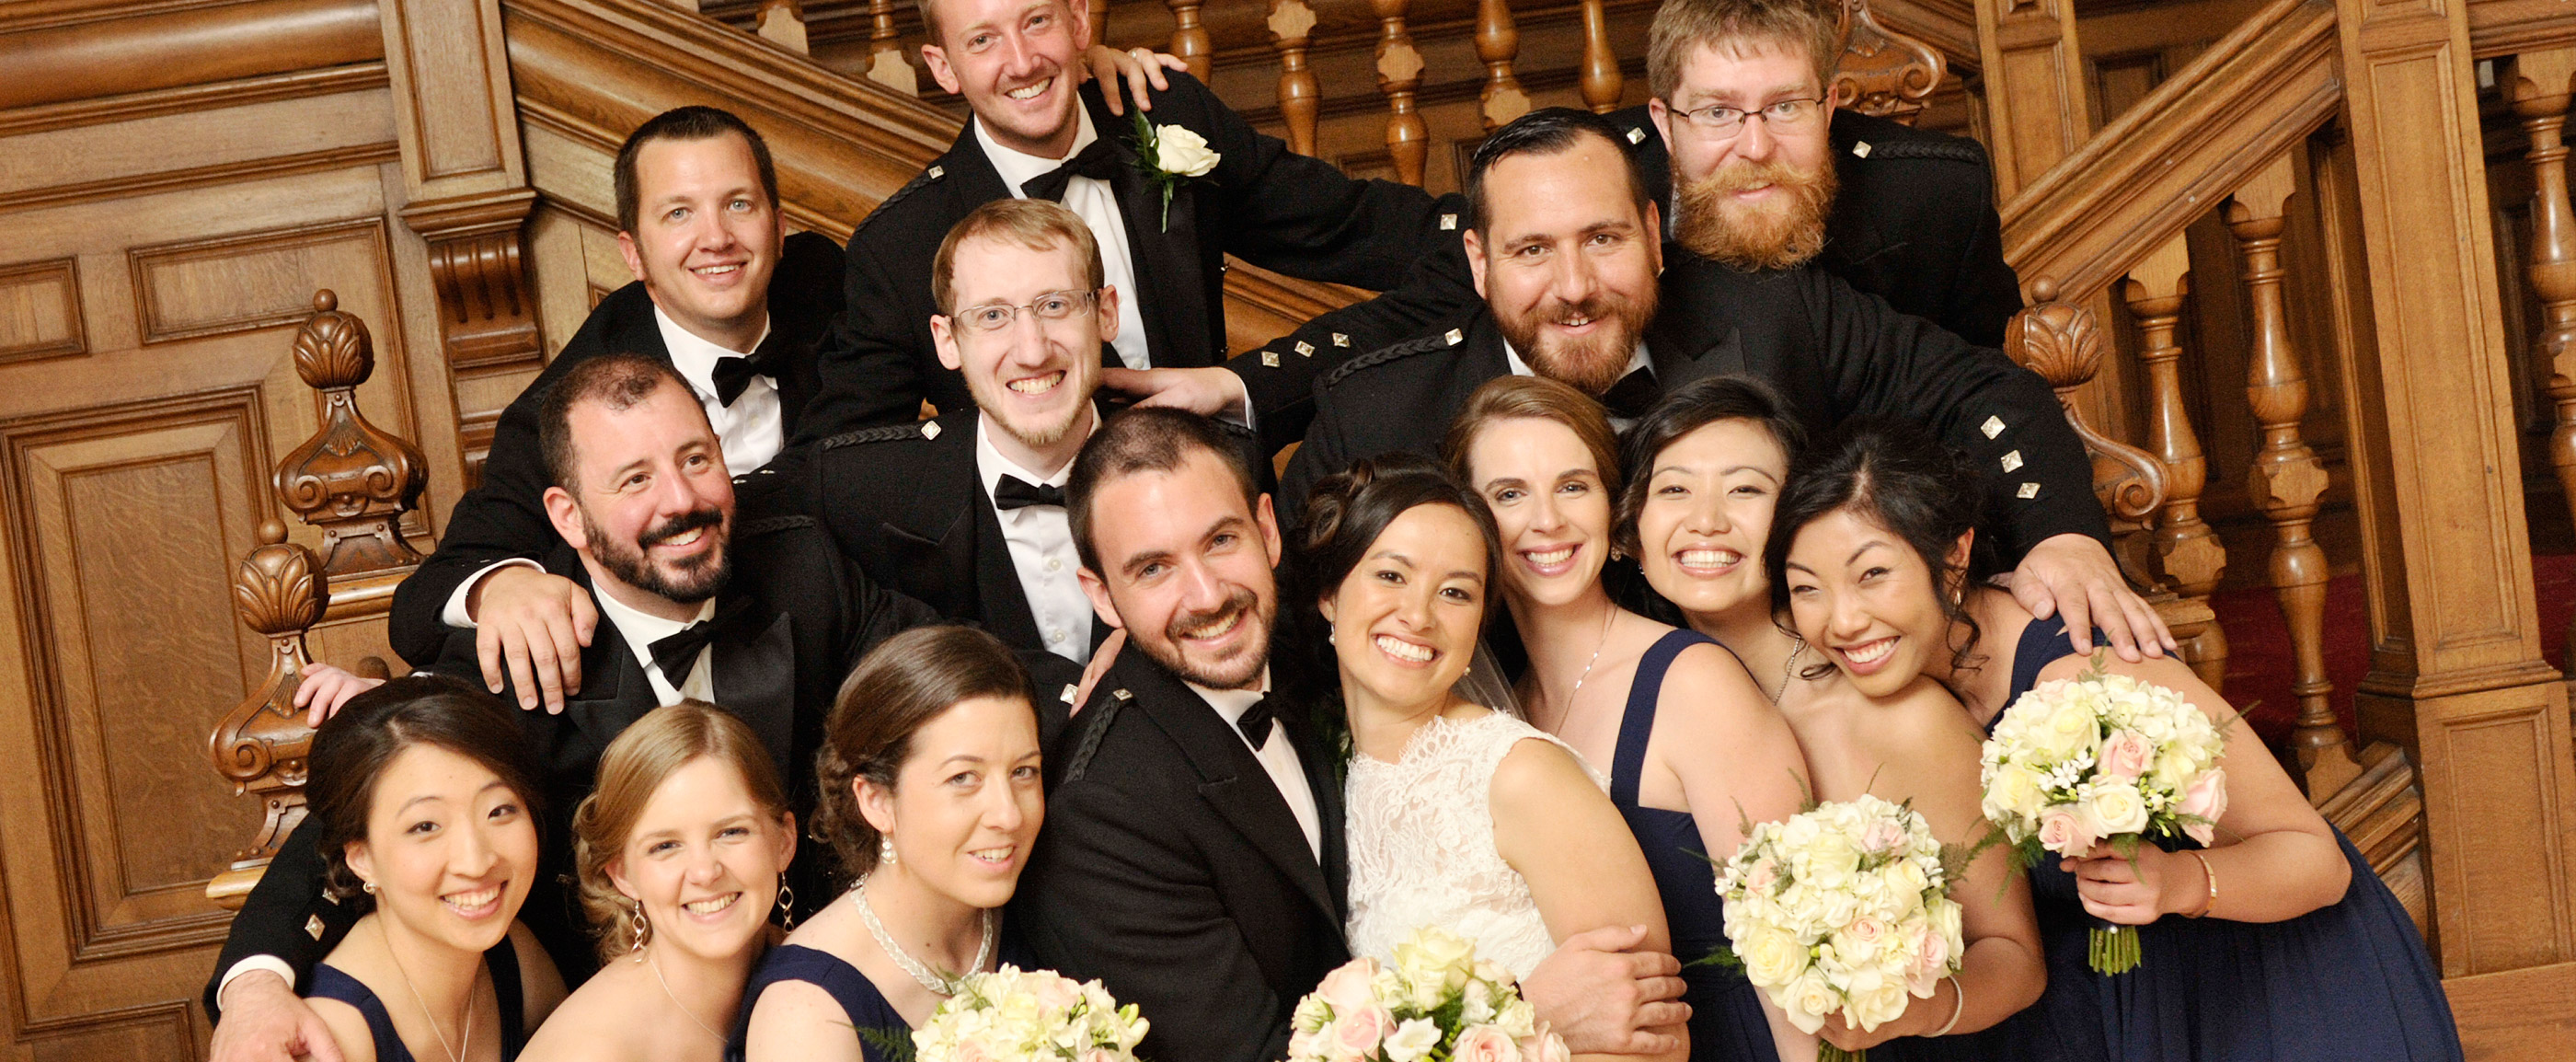 Photo of bride and groom with bridesmaids in dark blue dresses and guests in highland dress in front of wood paneled stairs